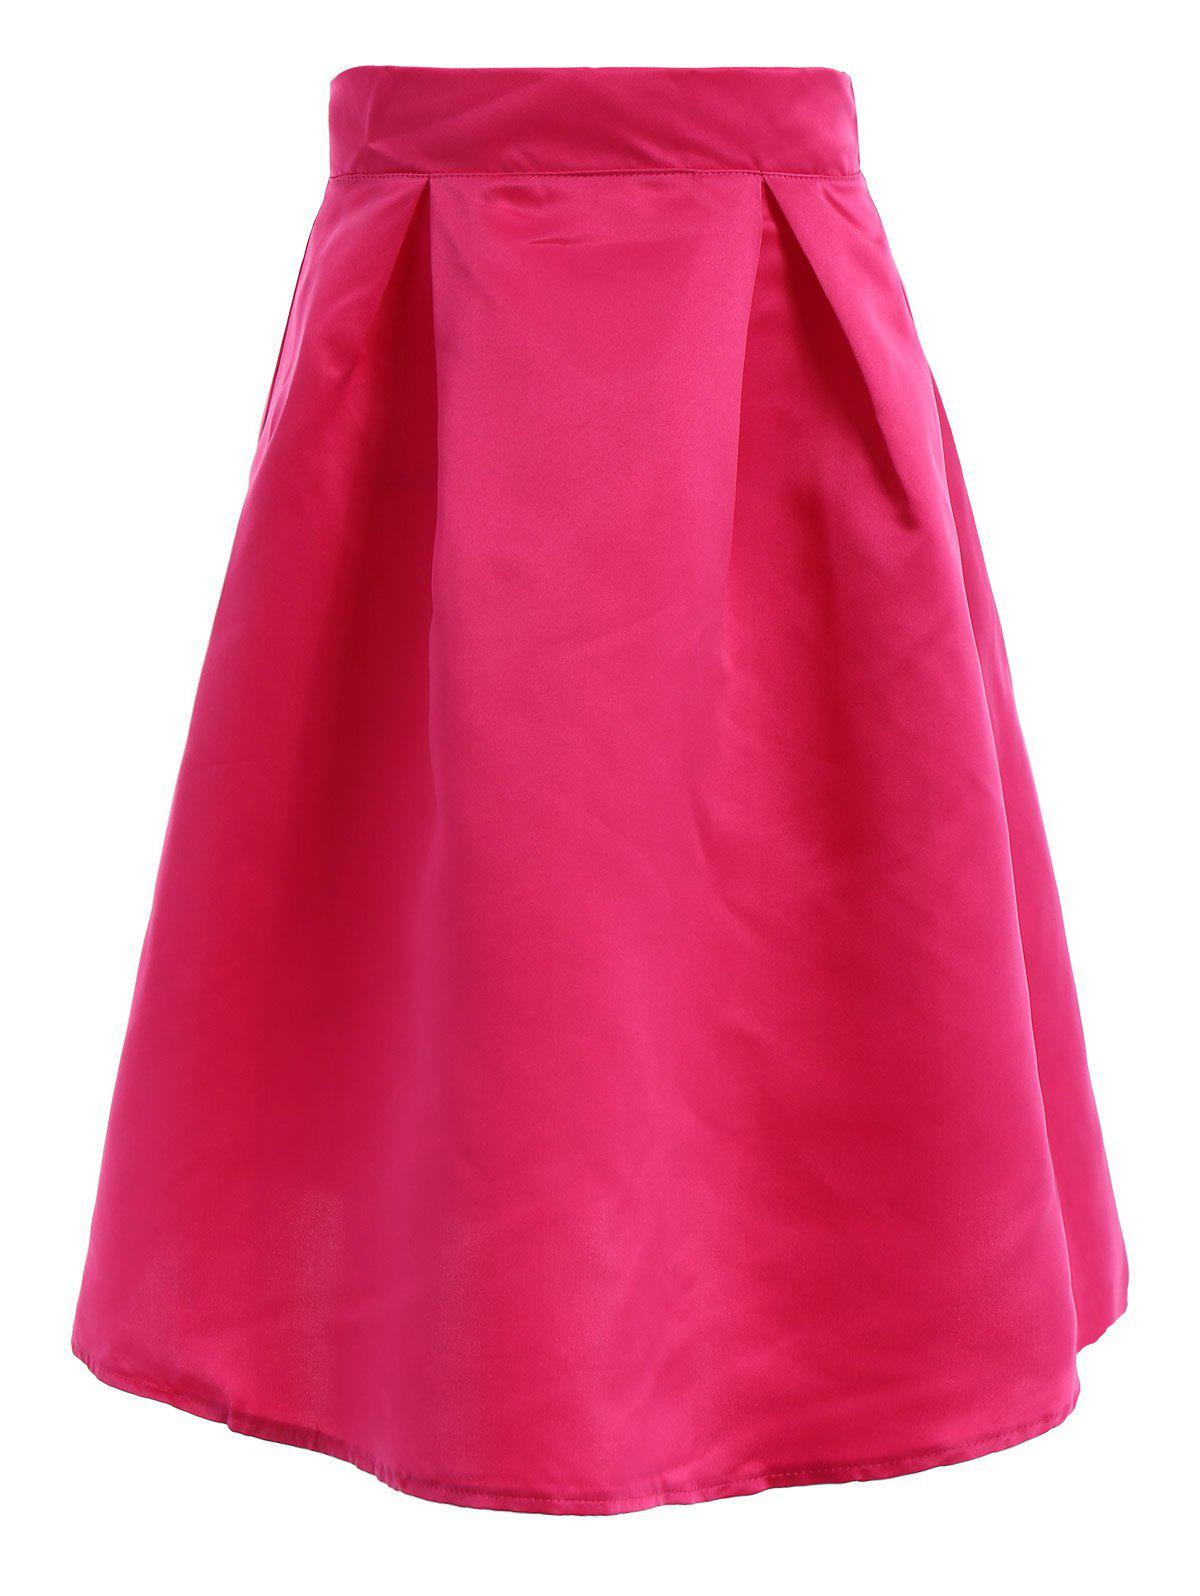 Endearing High Waist Candy Color Pleated Maxi Skirt For Women - ROSE S